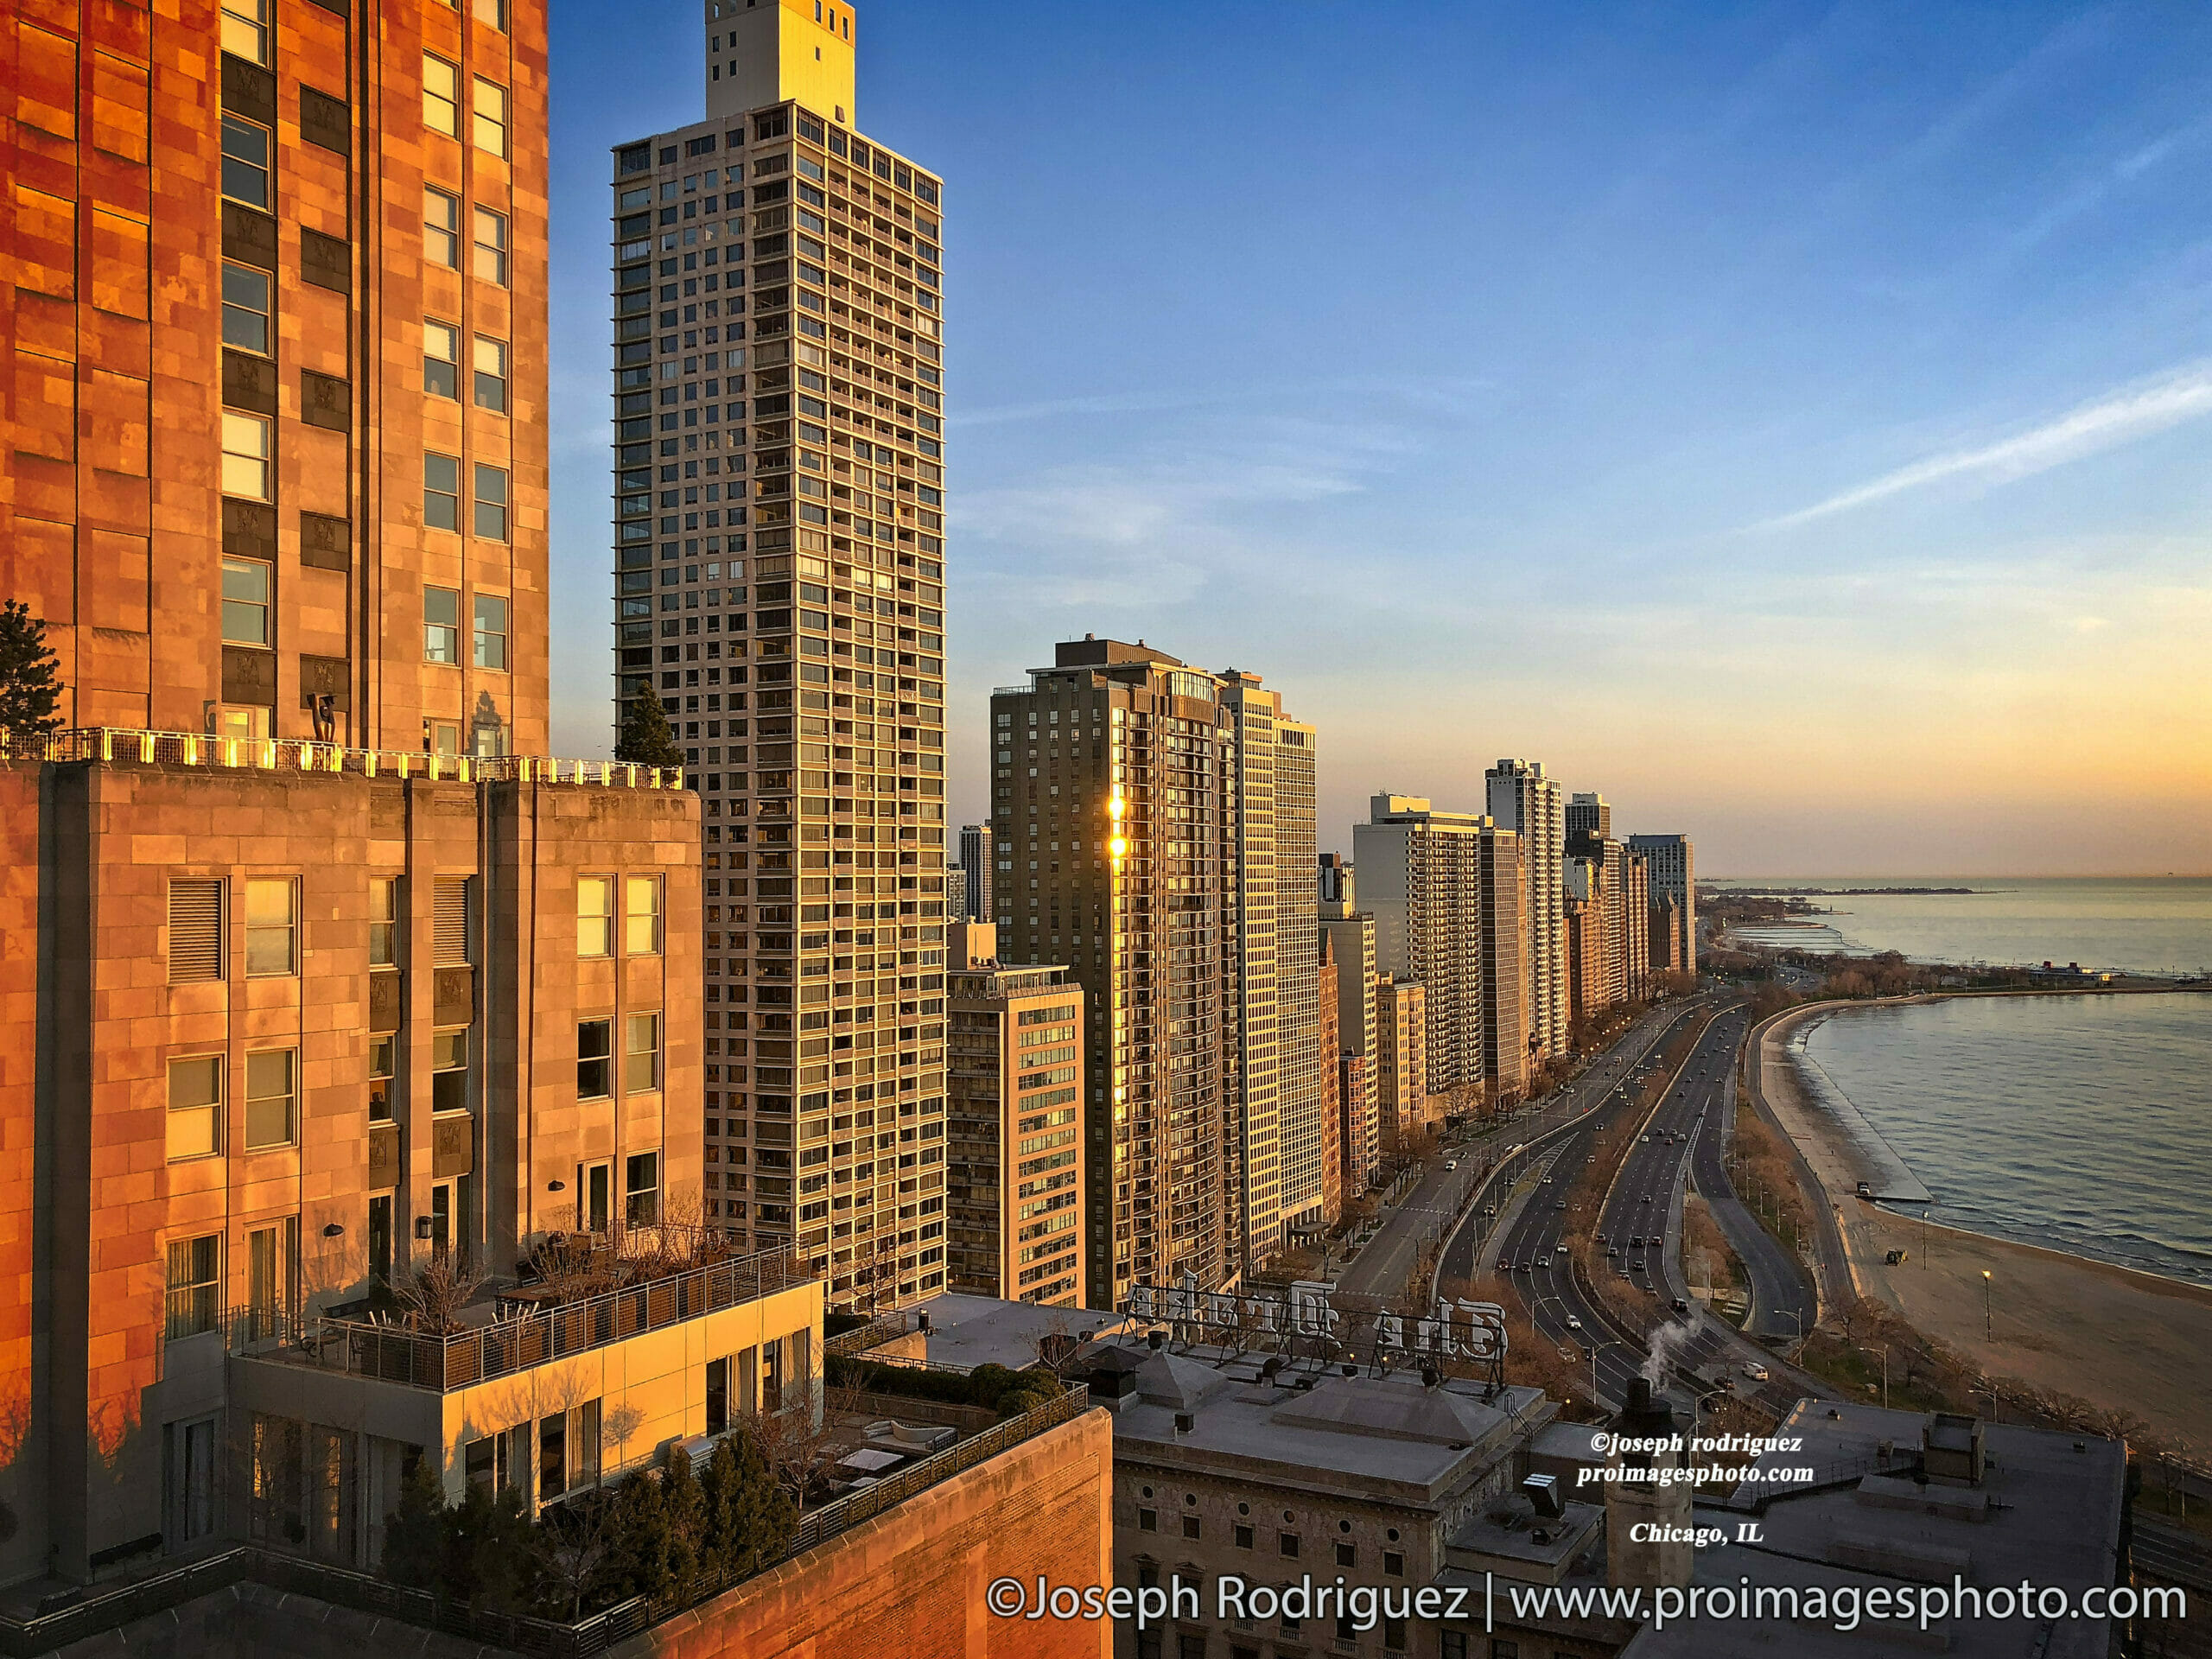 Chicago buildings facing Lake Michigan and you can Calumet Beach Botton right.